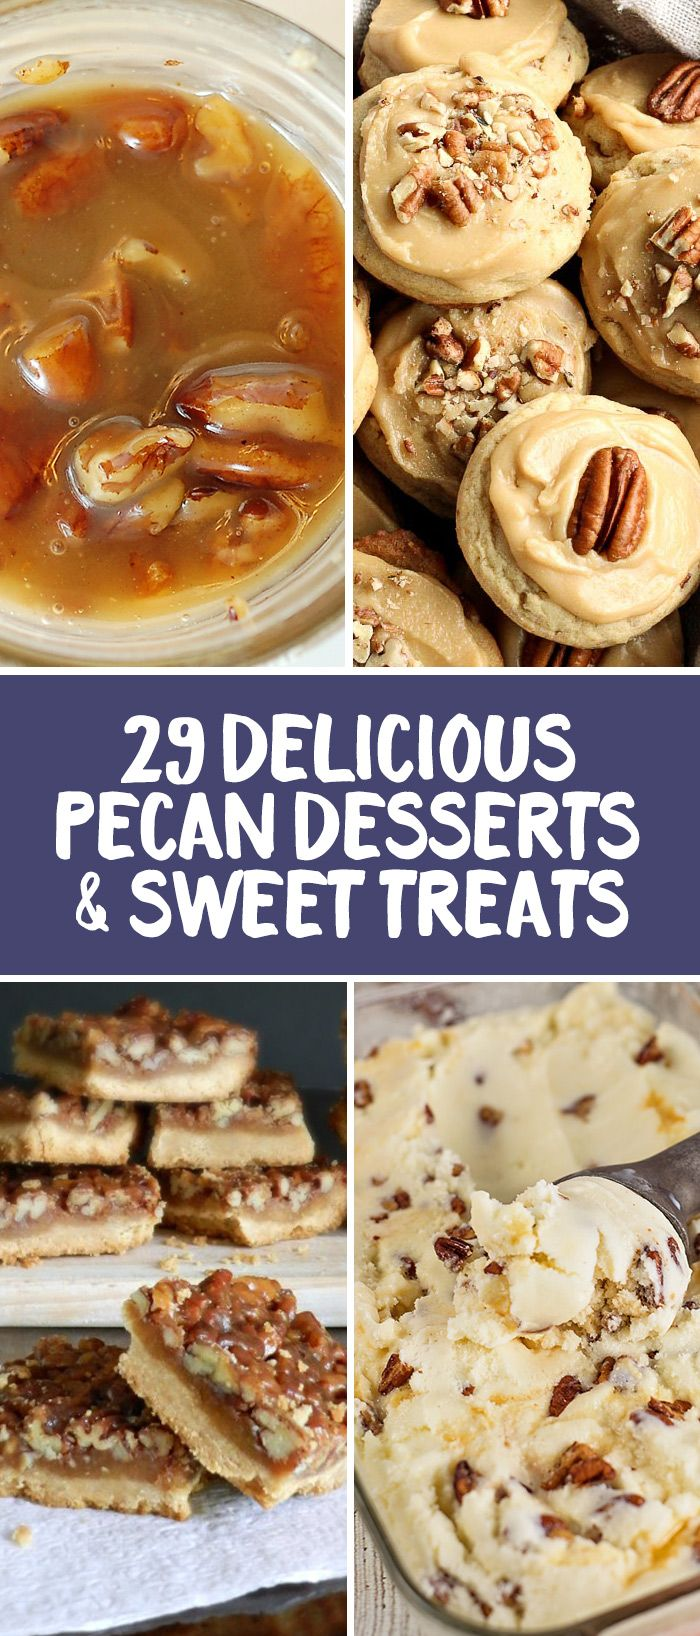 29 Delicious Pecan Desserts and Sweet Treats